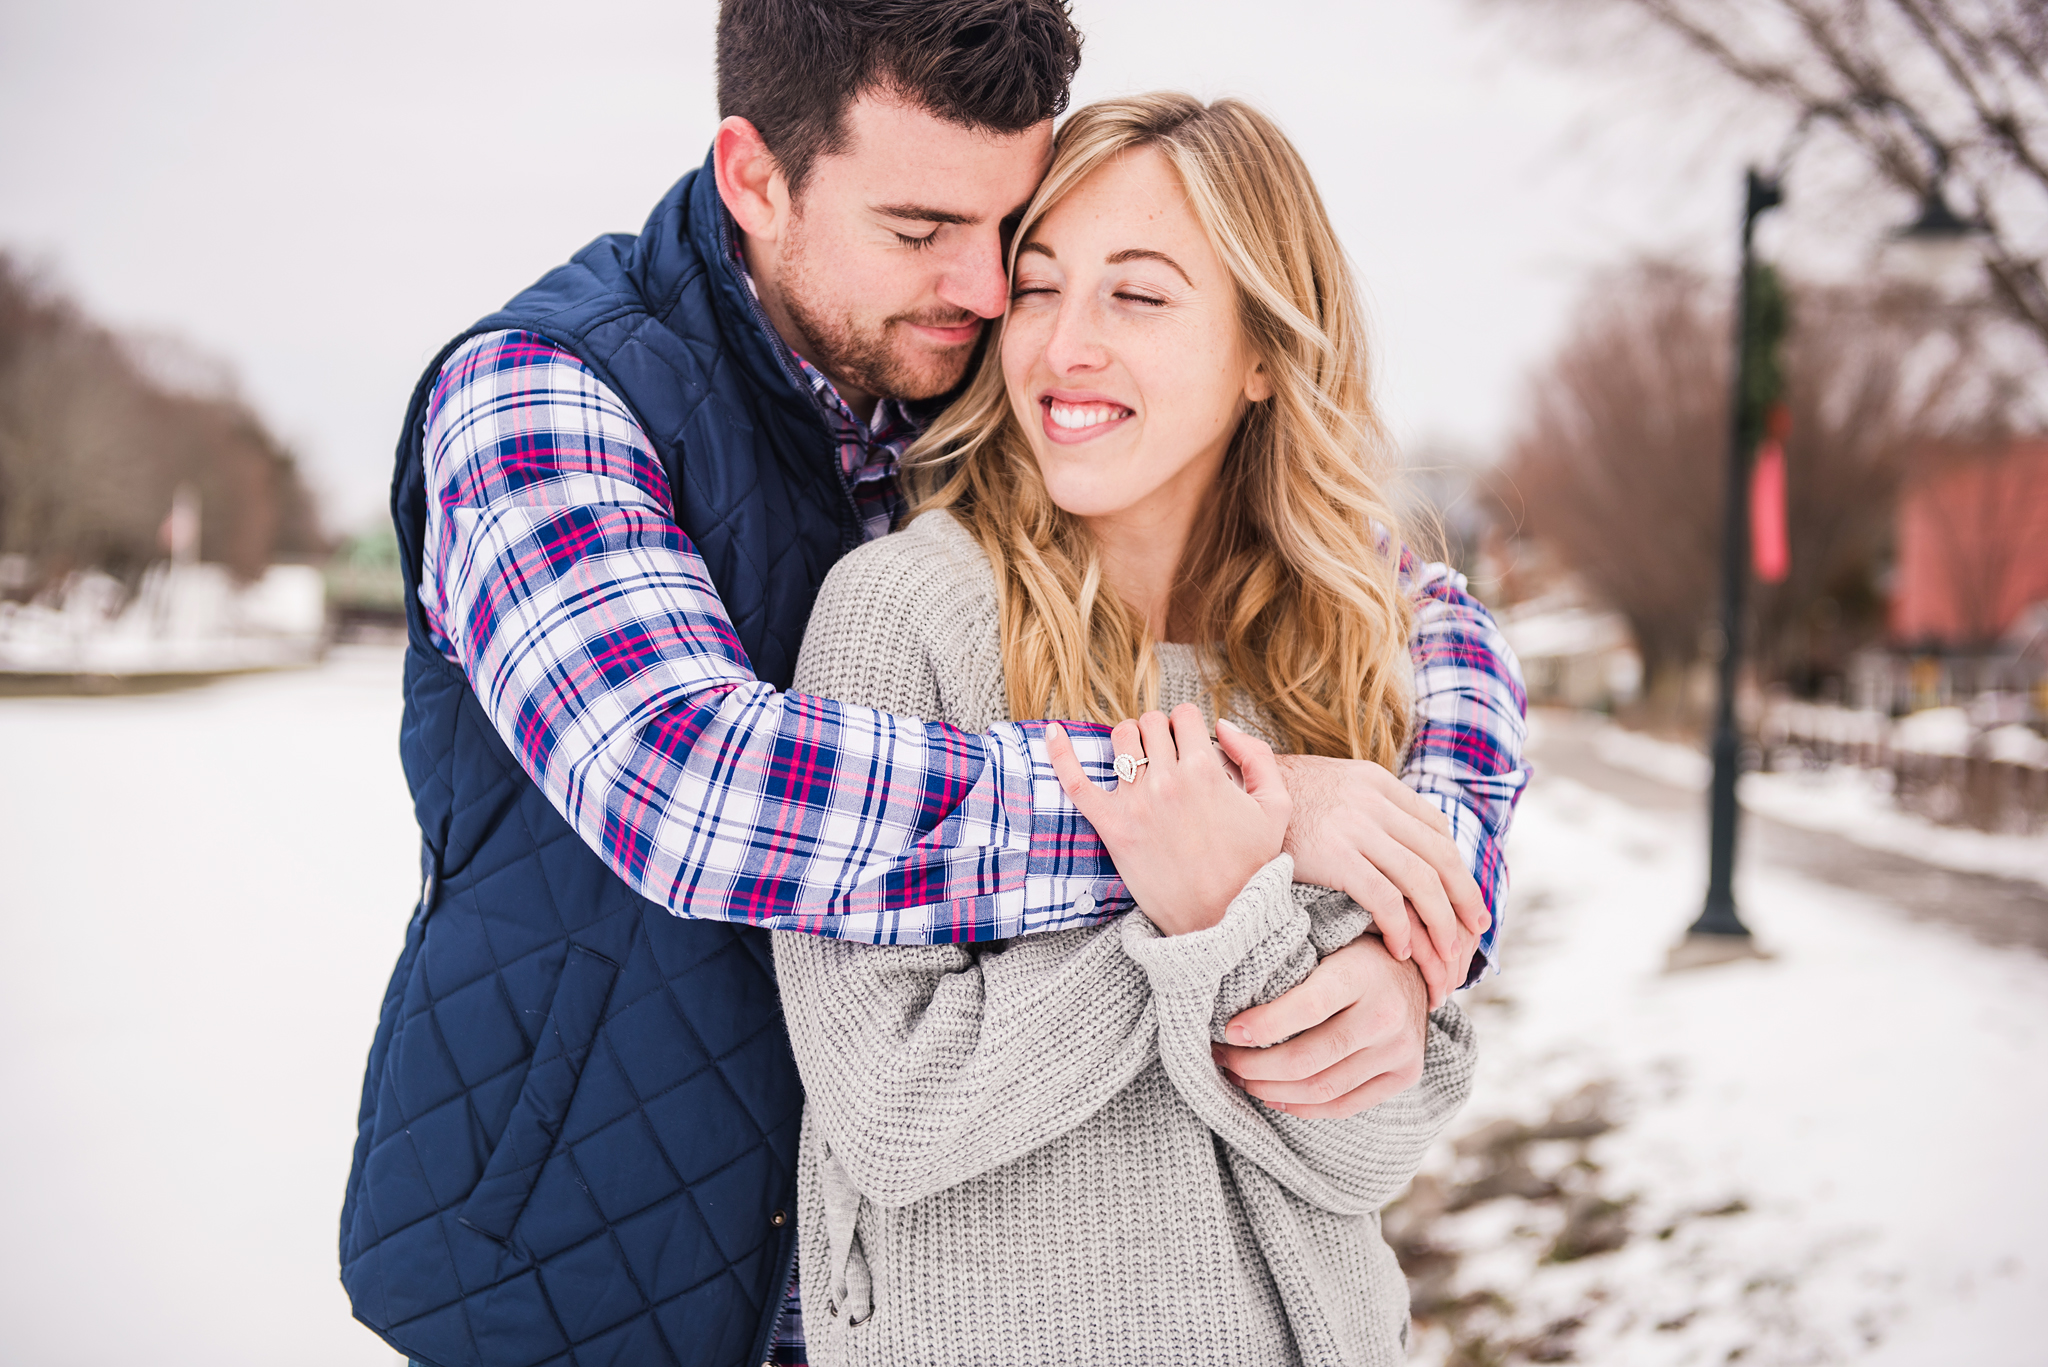 Schoen_Place_Rochester_Engagement_Session_JILL_STUDIO_Rochester_NY_Photographer_DSC_1182.jpg